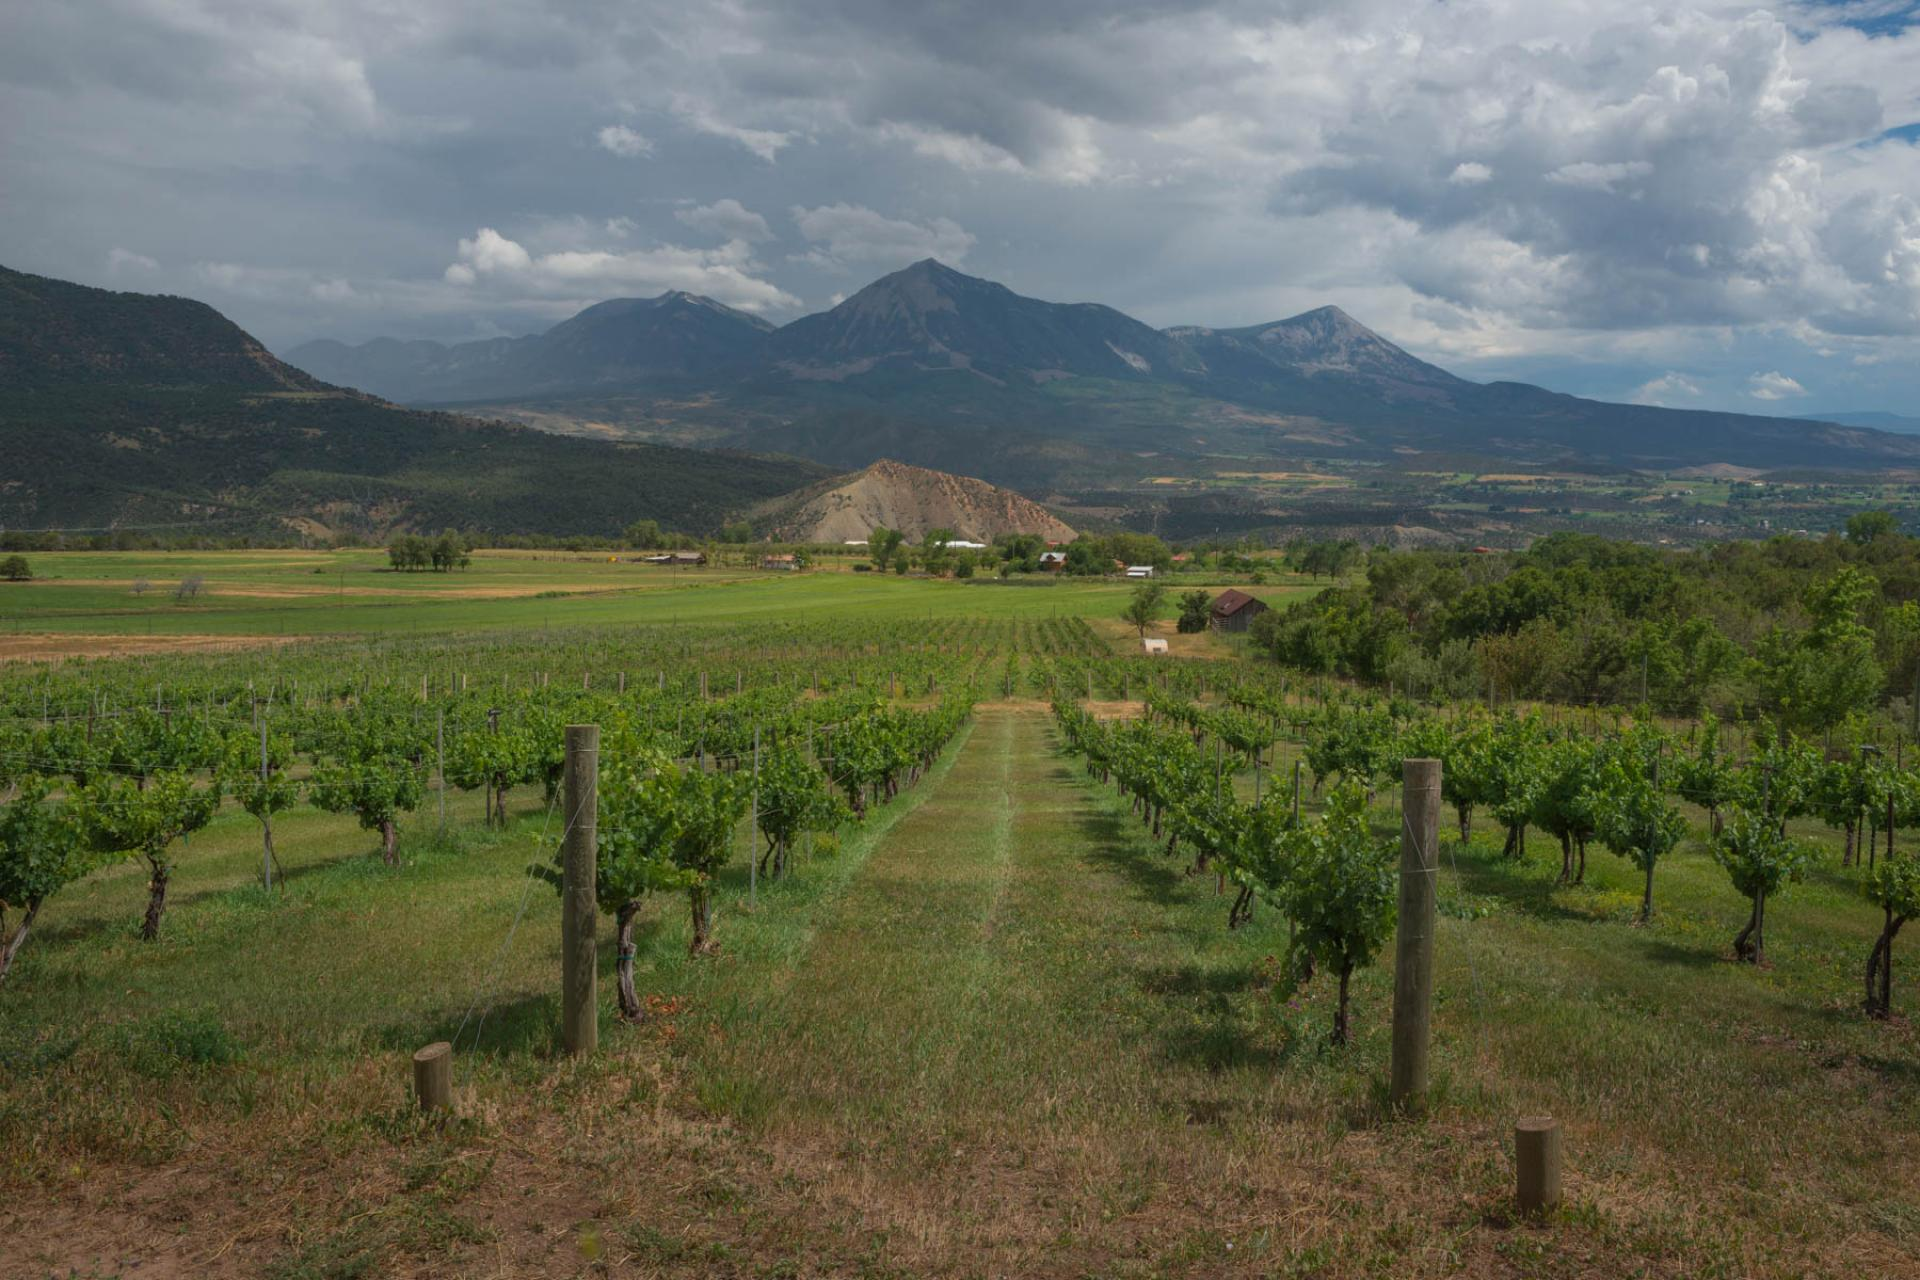 Vineyards in North Fork Valley, Colorado.